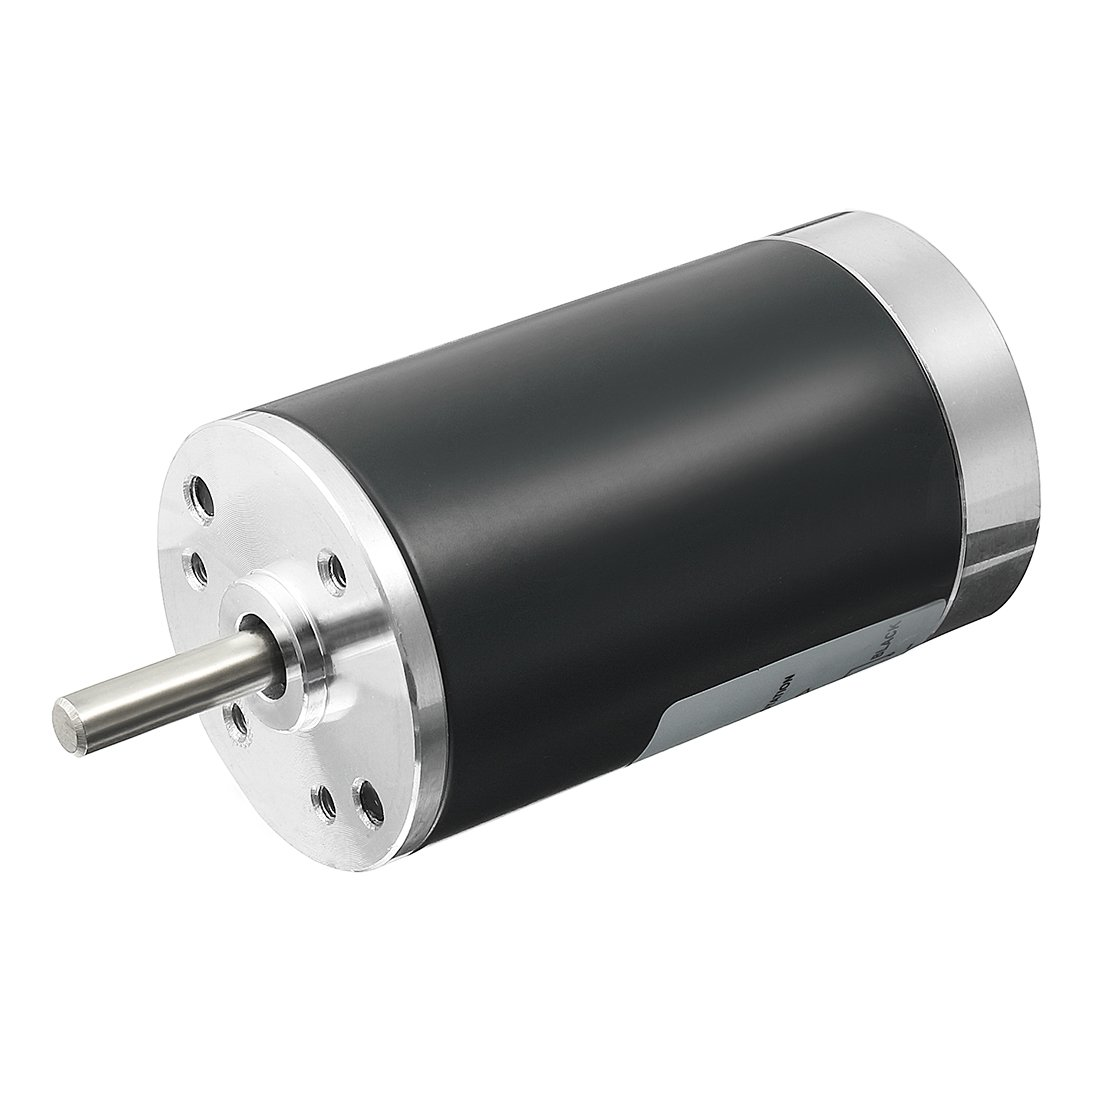 uxcell DC 24V 5000RPM Brushed Electric Motor 38mm CCW Replacement Motor